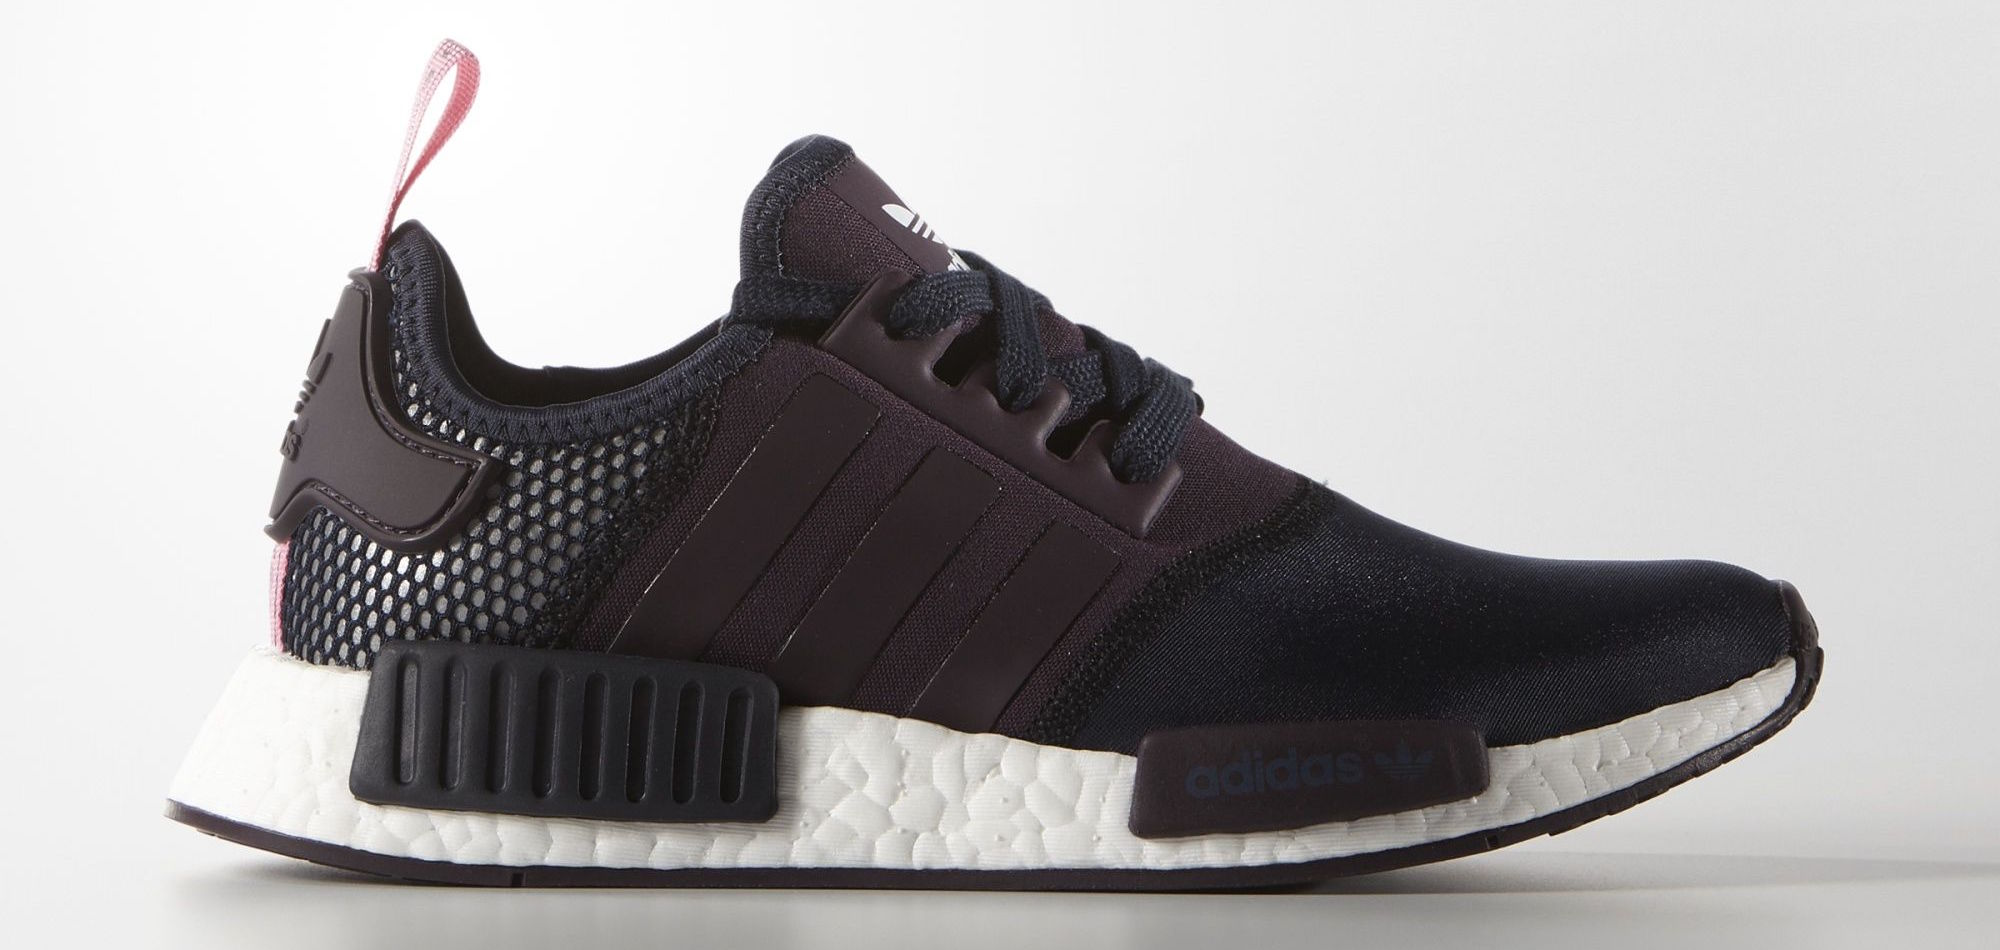 The Adidas Nmd R1 Runner Is Available In Multiple